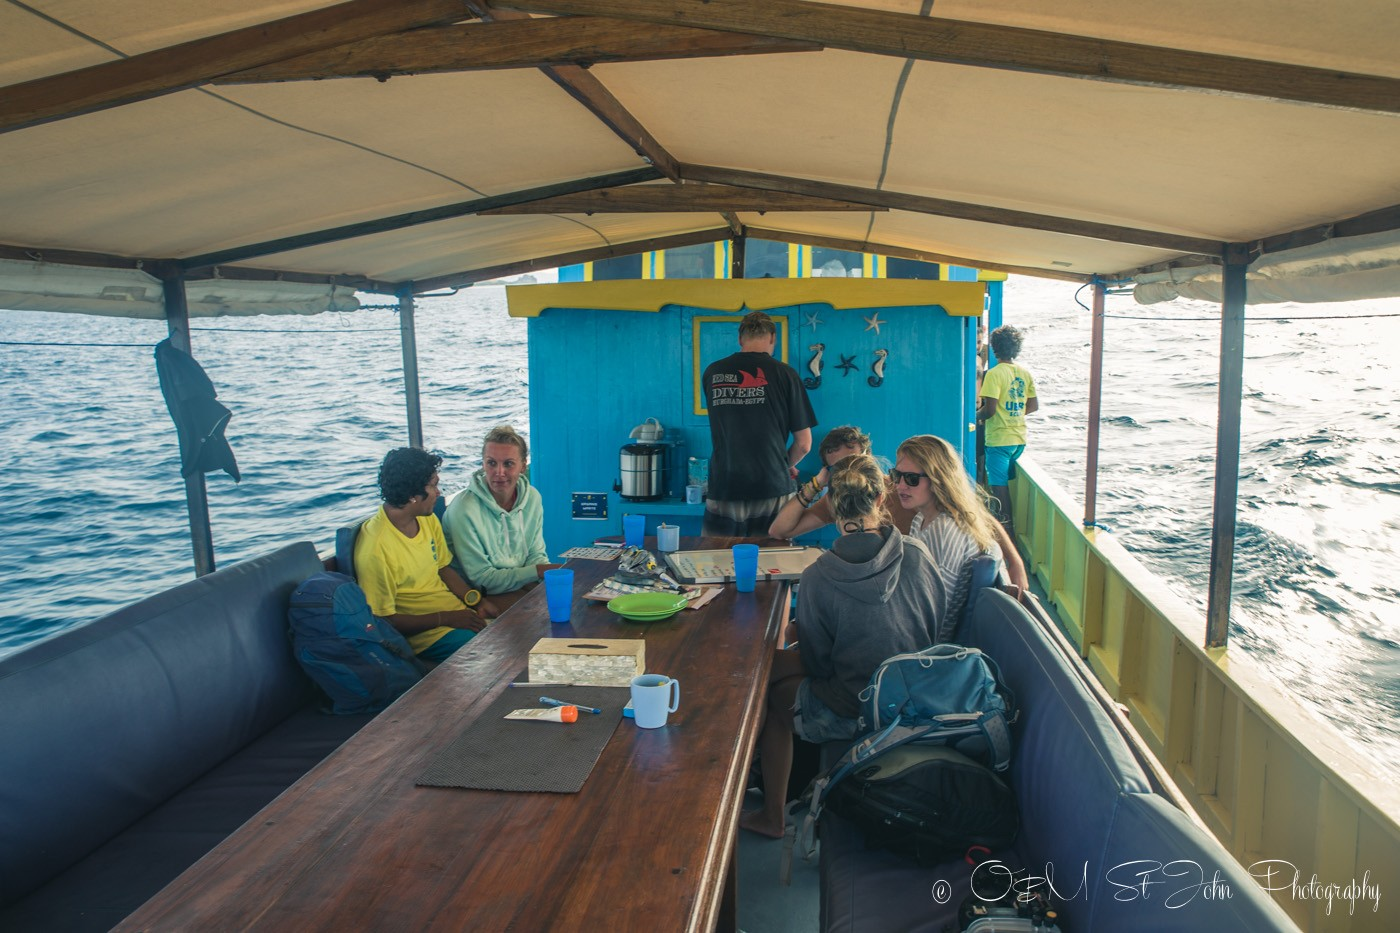 Divers chatting away on board Uber Scuba Komodo Day Boat